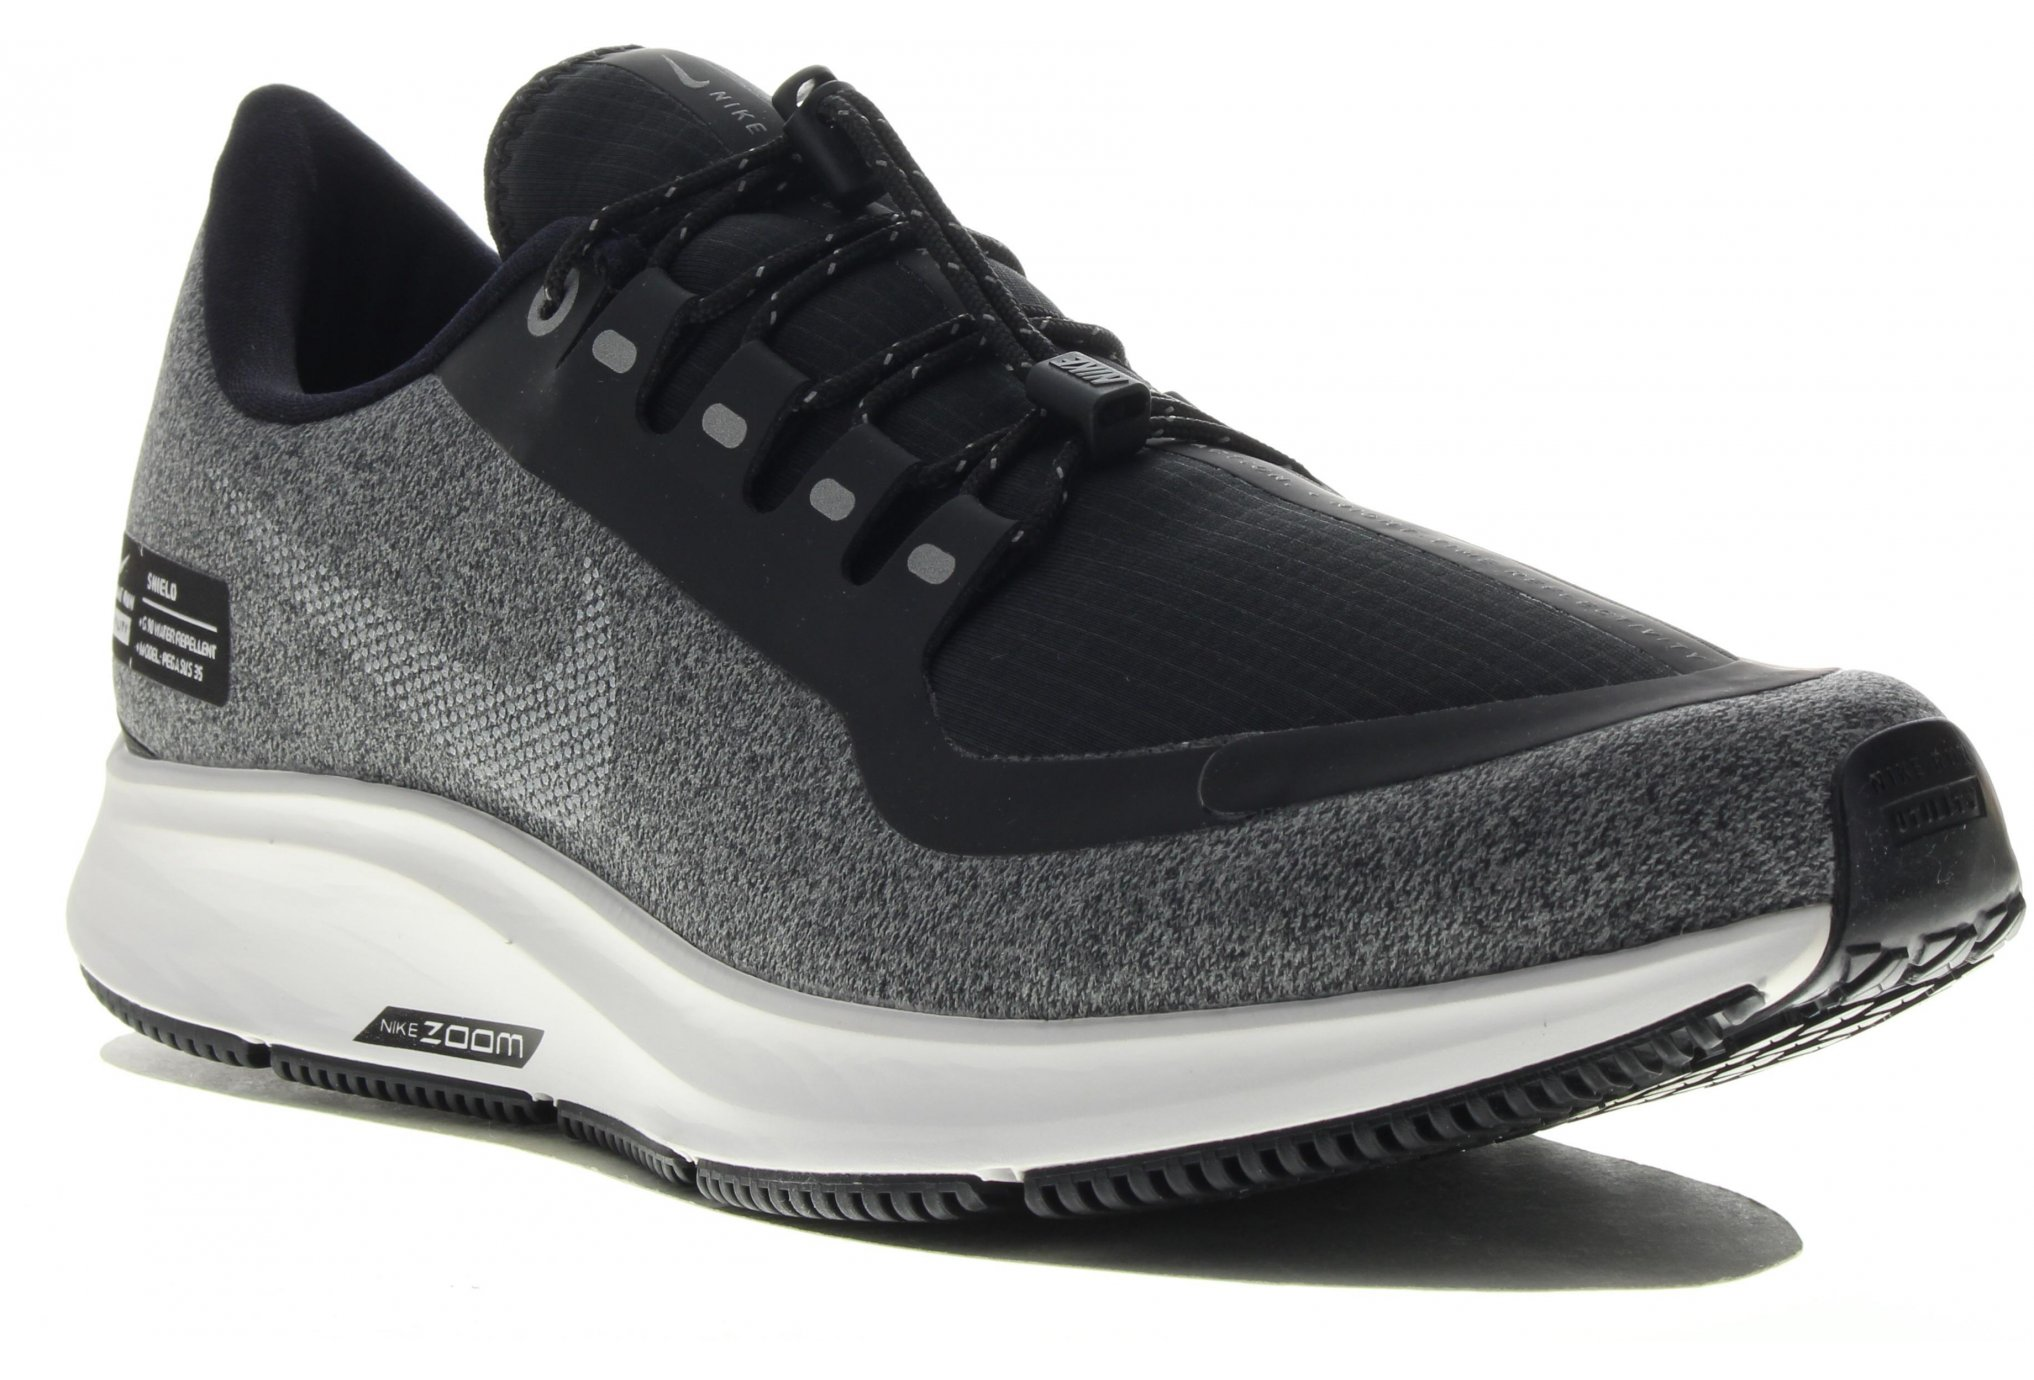 timeless design b490b 81cdc Precios de Nike Air Zoom Pegasus 35 Shield talla 38.5 baratas ...